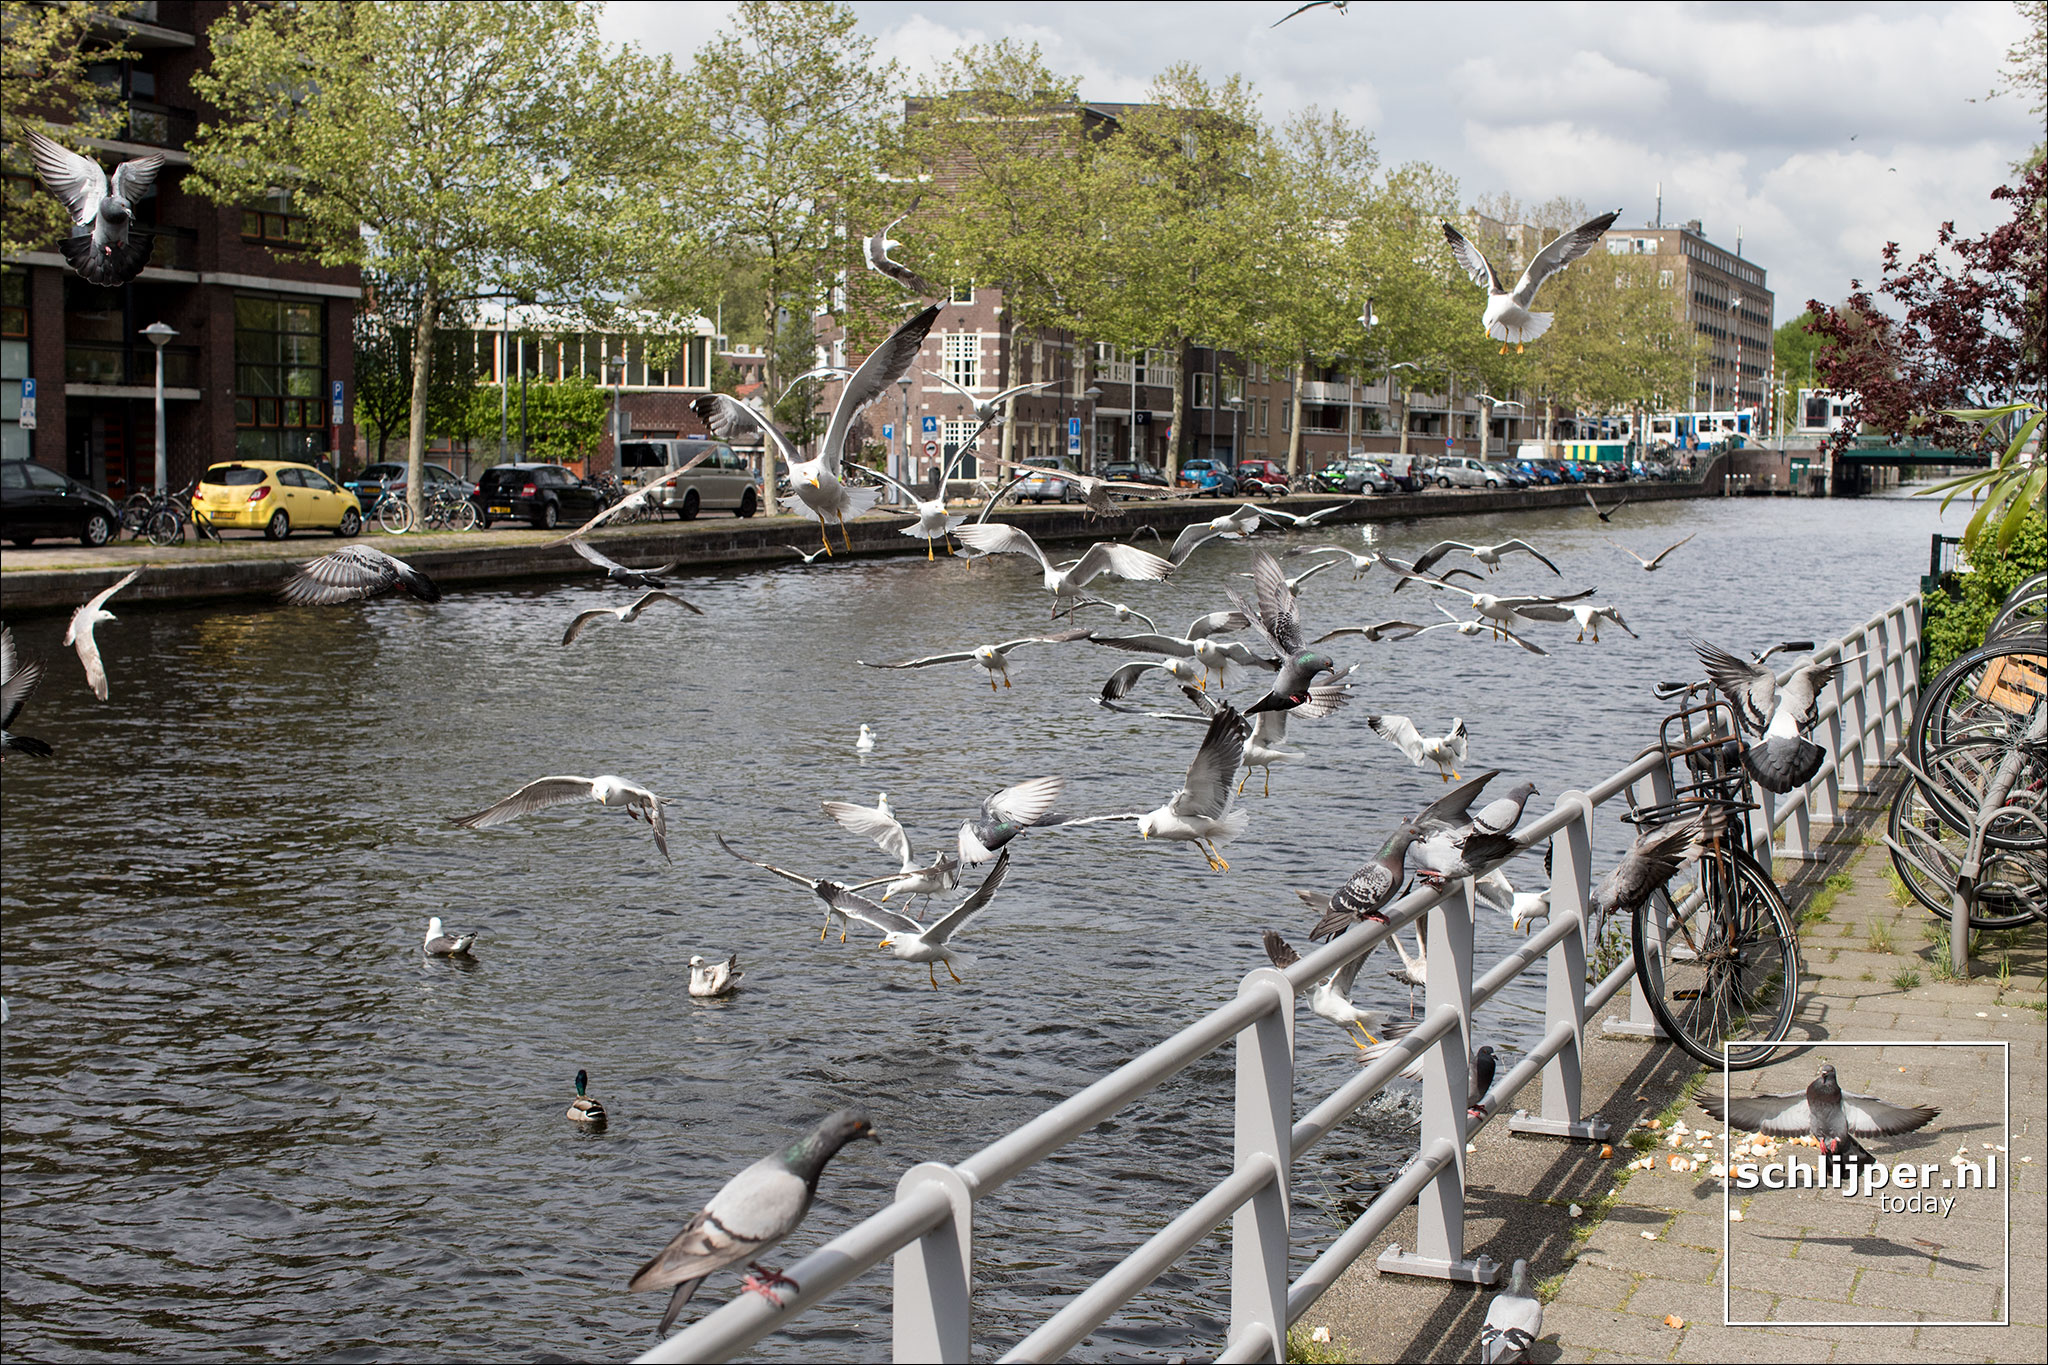 The Netherlands, Amsterdam, 28 april 2019